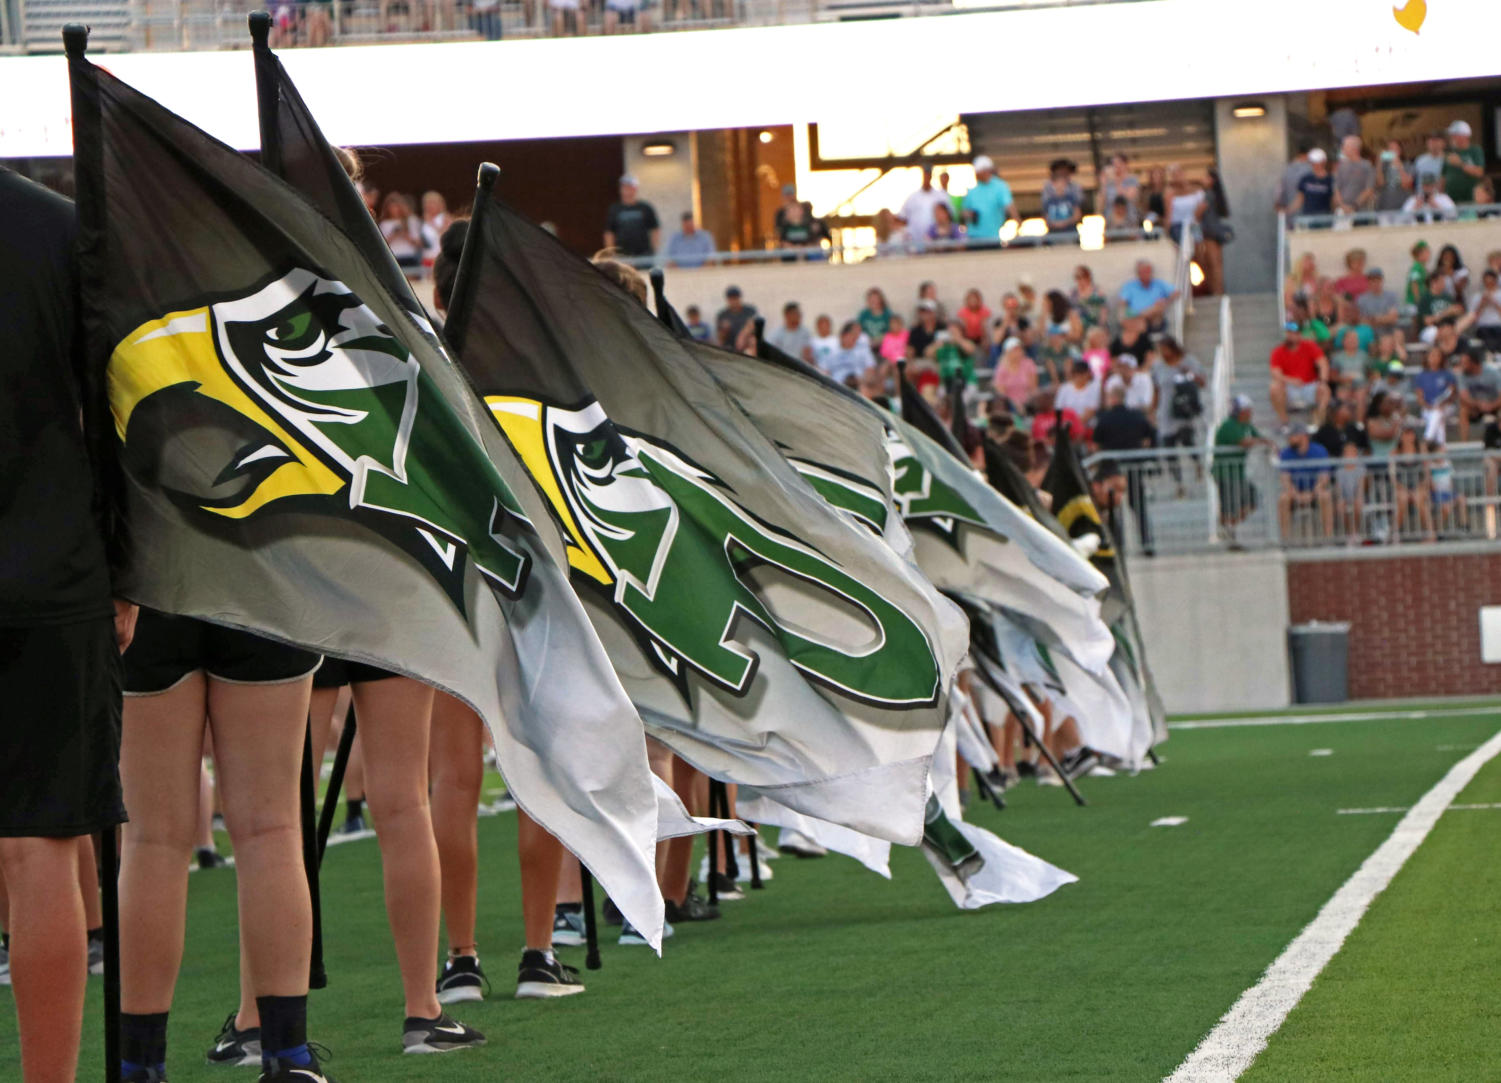 Color guard's flags sway in the wind as they stand in formation. The color guard is a section of the marching band that dances and spins.